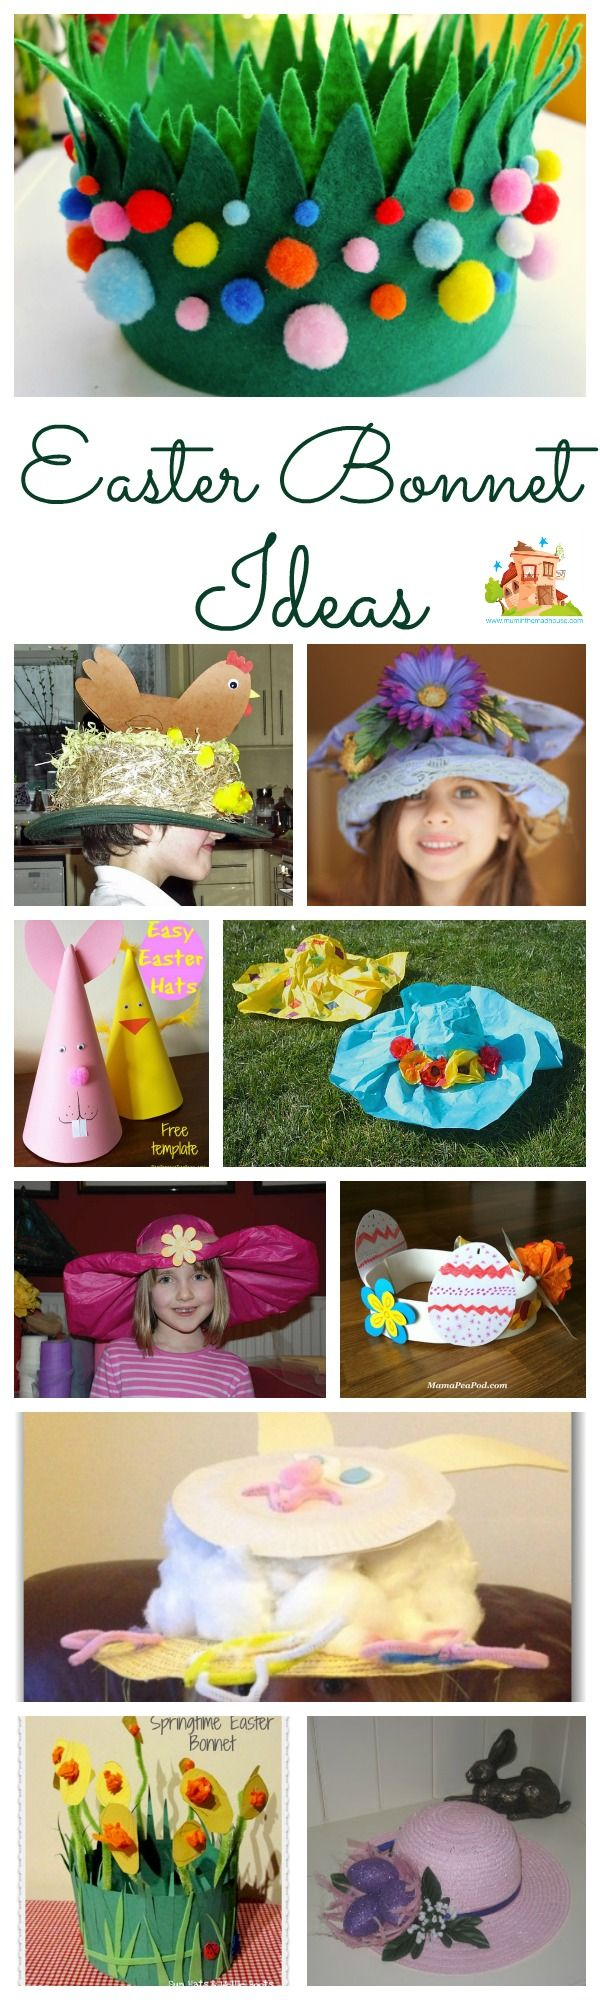 Fab selection of Easter Bonnet ideas and inspiration for decorating with kids, including boys, preschoolers and toddlers.